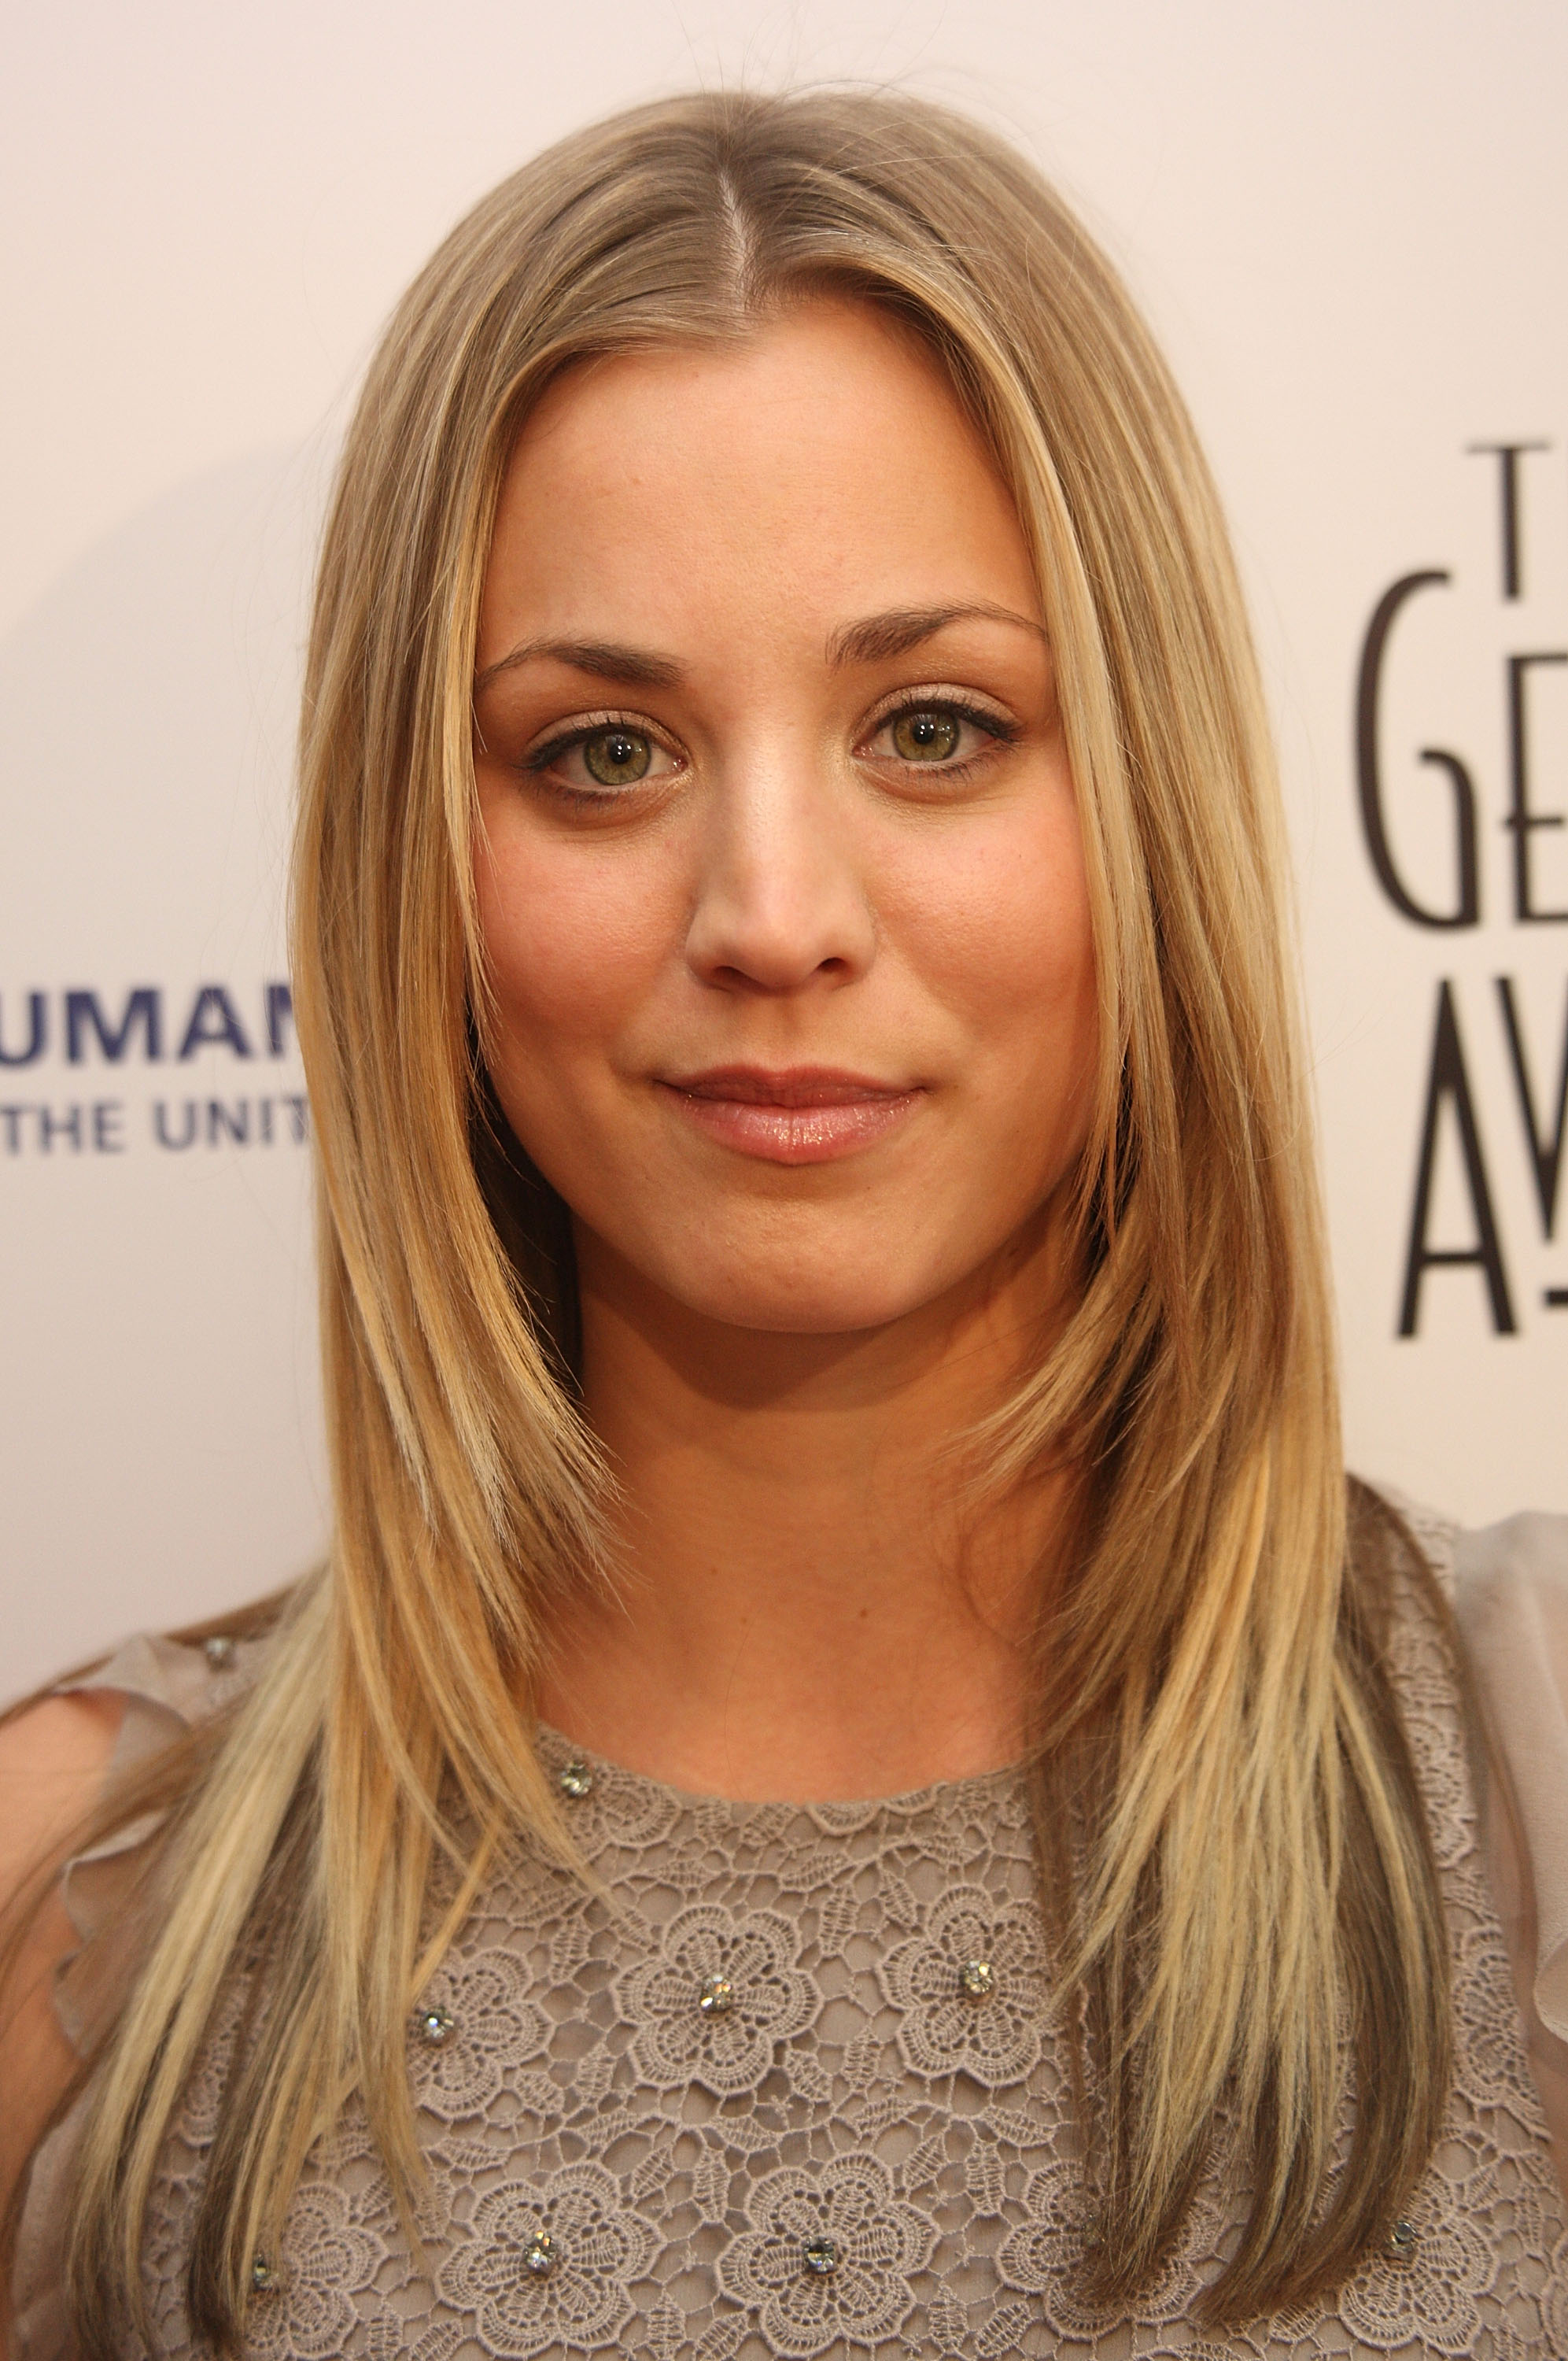 Kaley Cuoco Sweeting Wallpapers High Quality Download Free